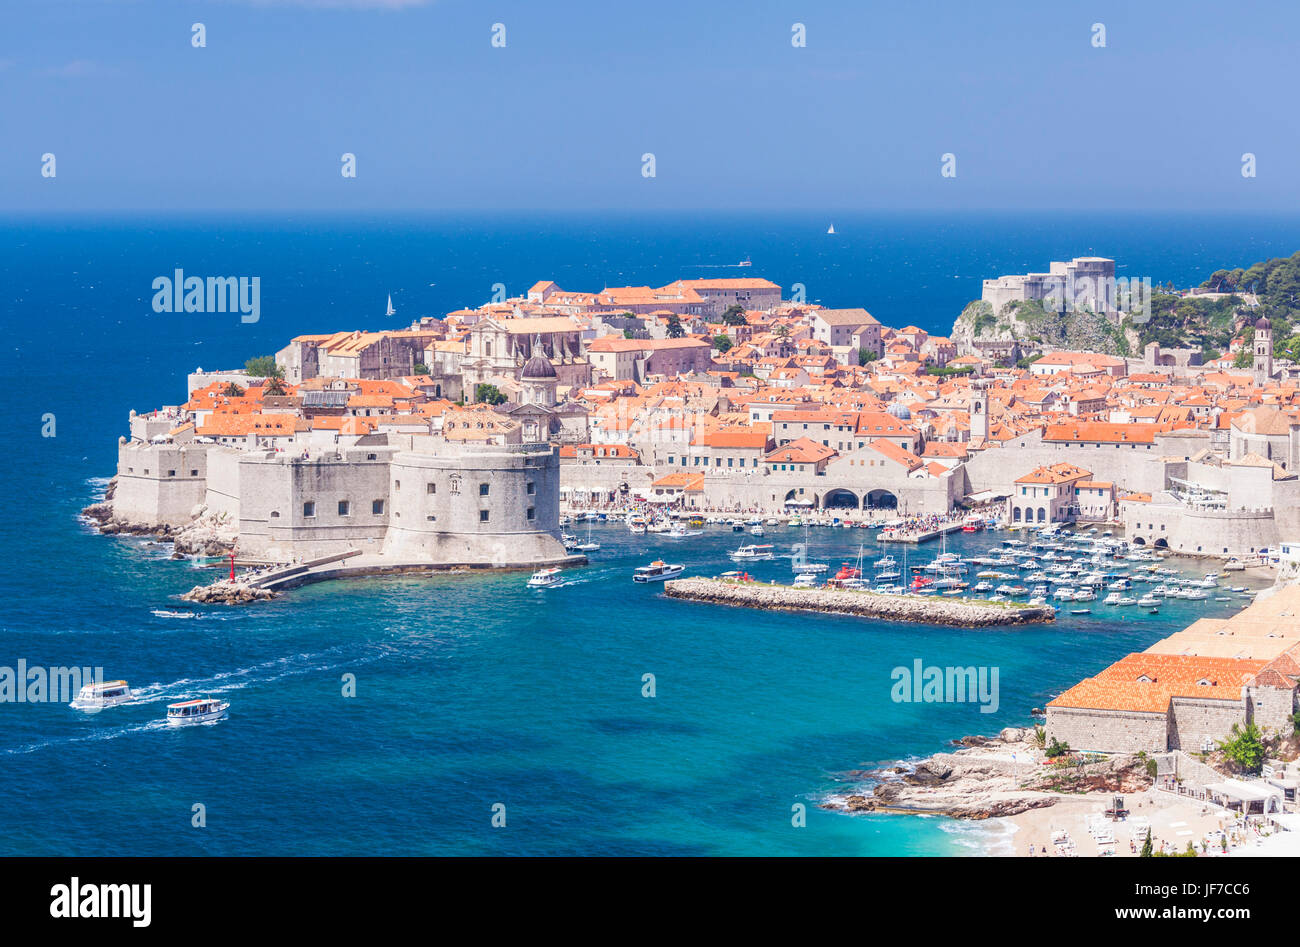 Croatia Dubrovnik Croatia Dalmatian coast view of Dubrovnik old Town city walls old port and harbour with boats - Stock Image